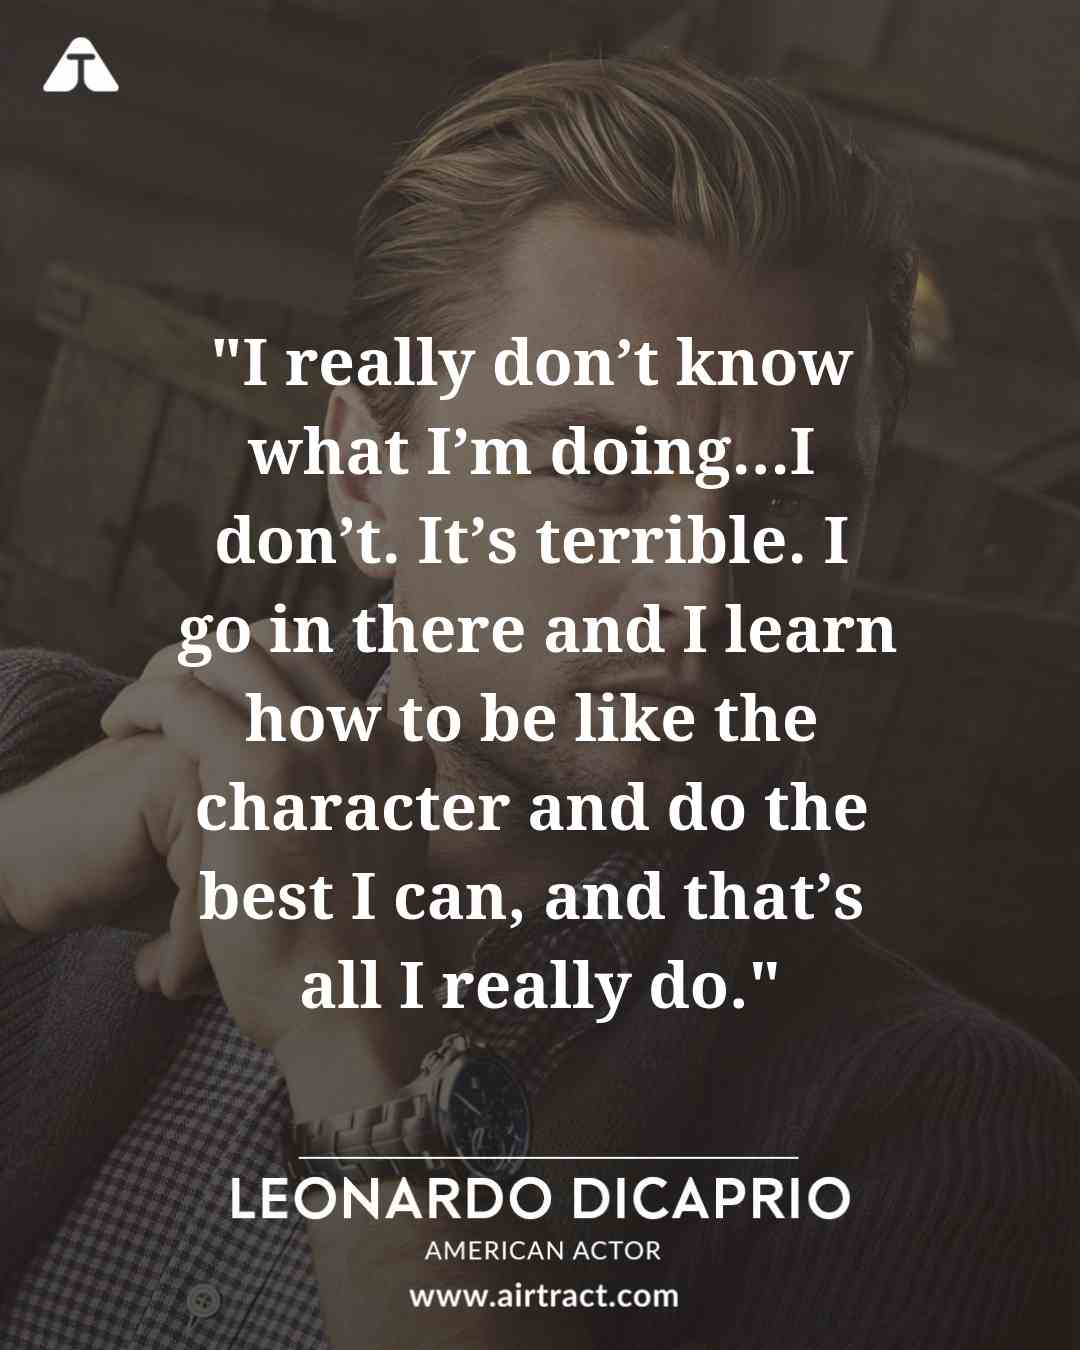 Top 13 Leonardo DiCaprio Quotes That Will Make You Think ...